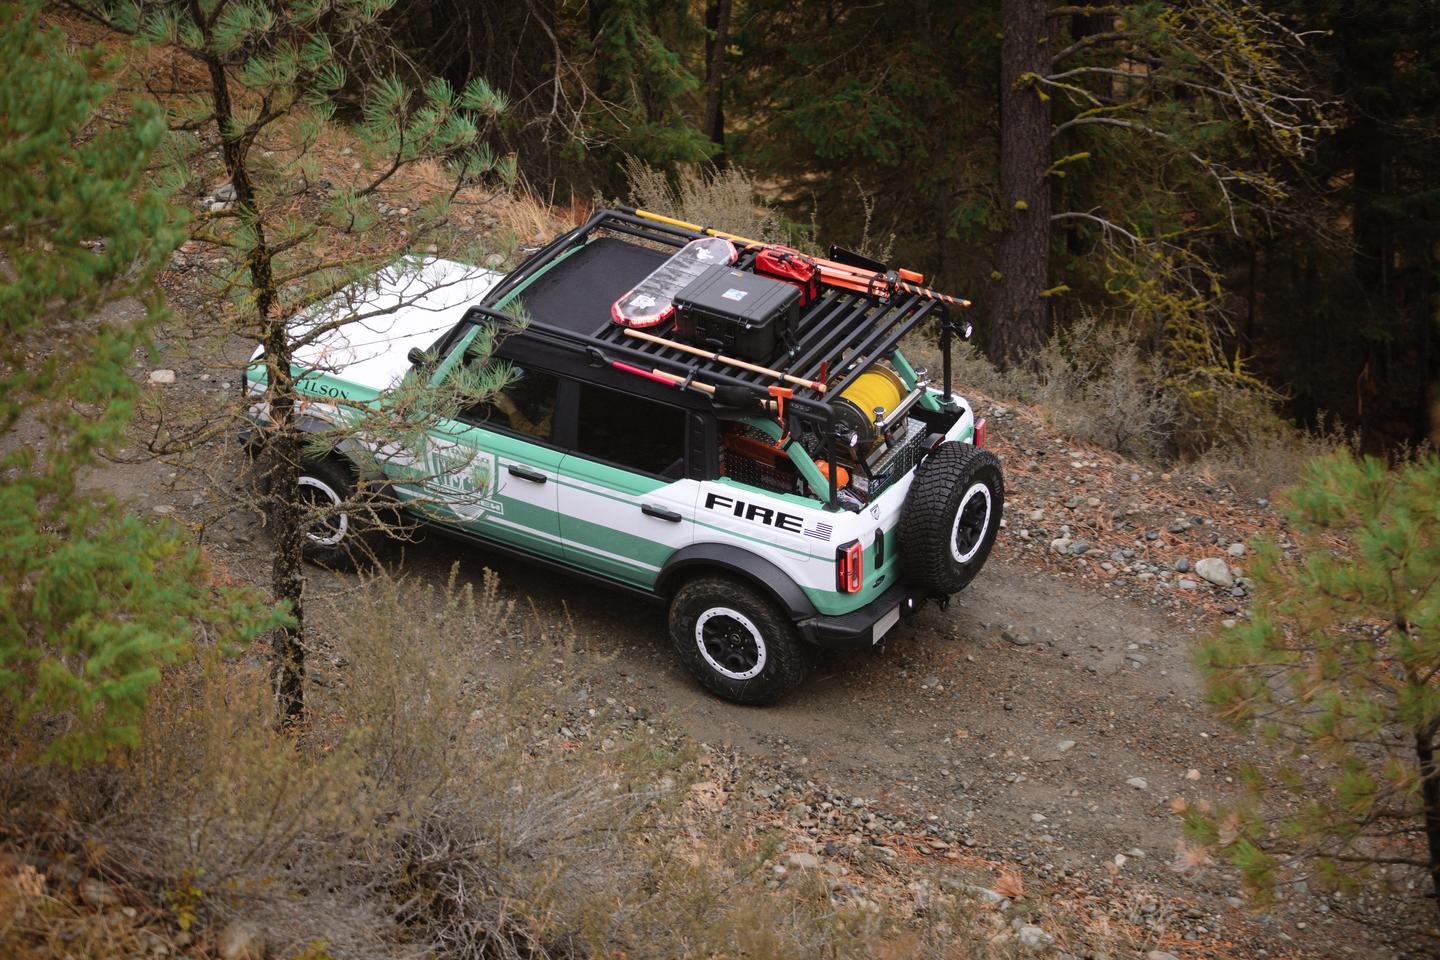 The custom roof rack carries equipment and works as a lookout stand to give firefighters a higher vantage point